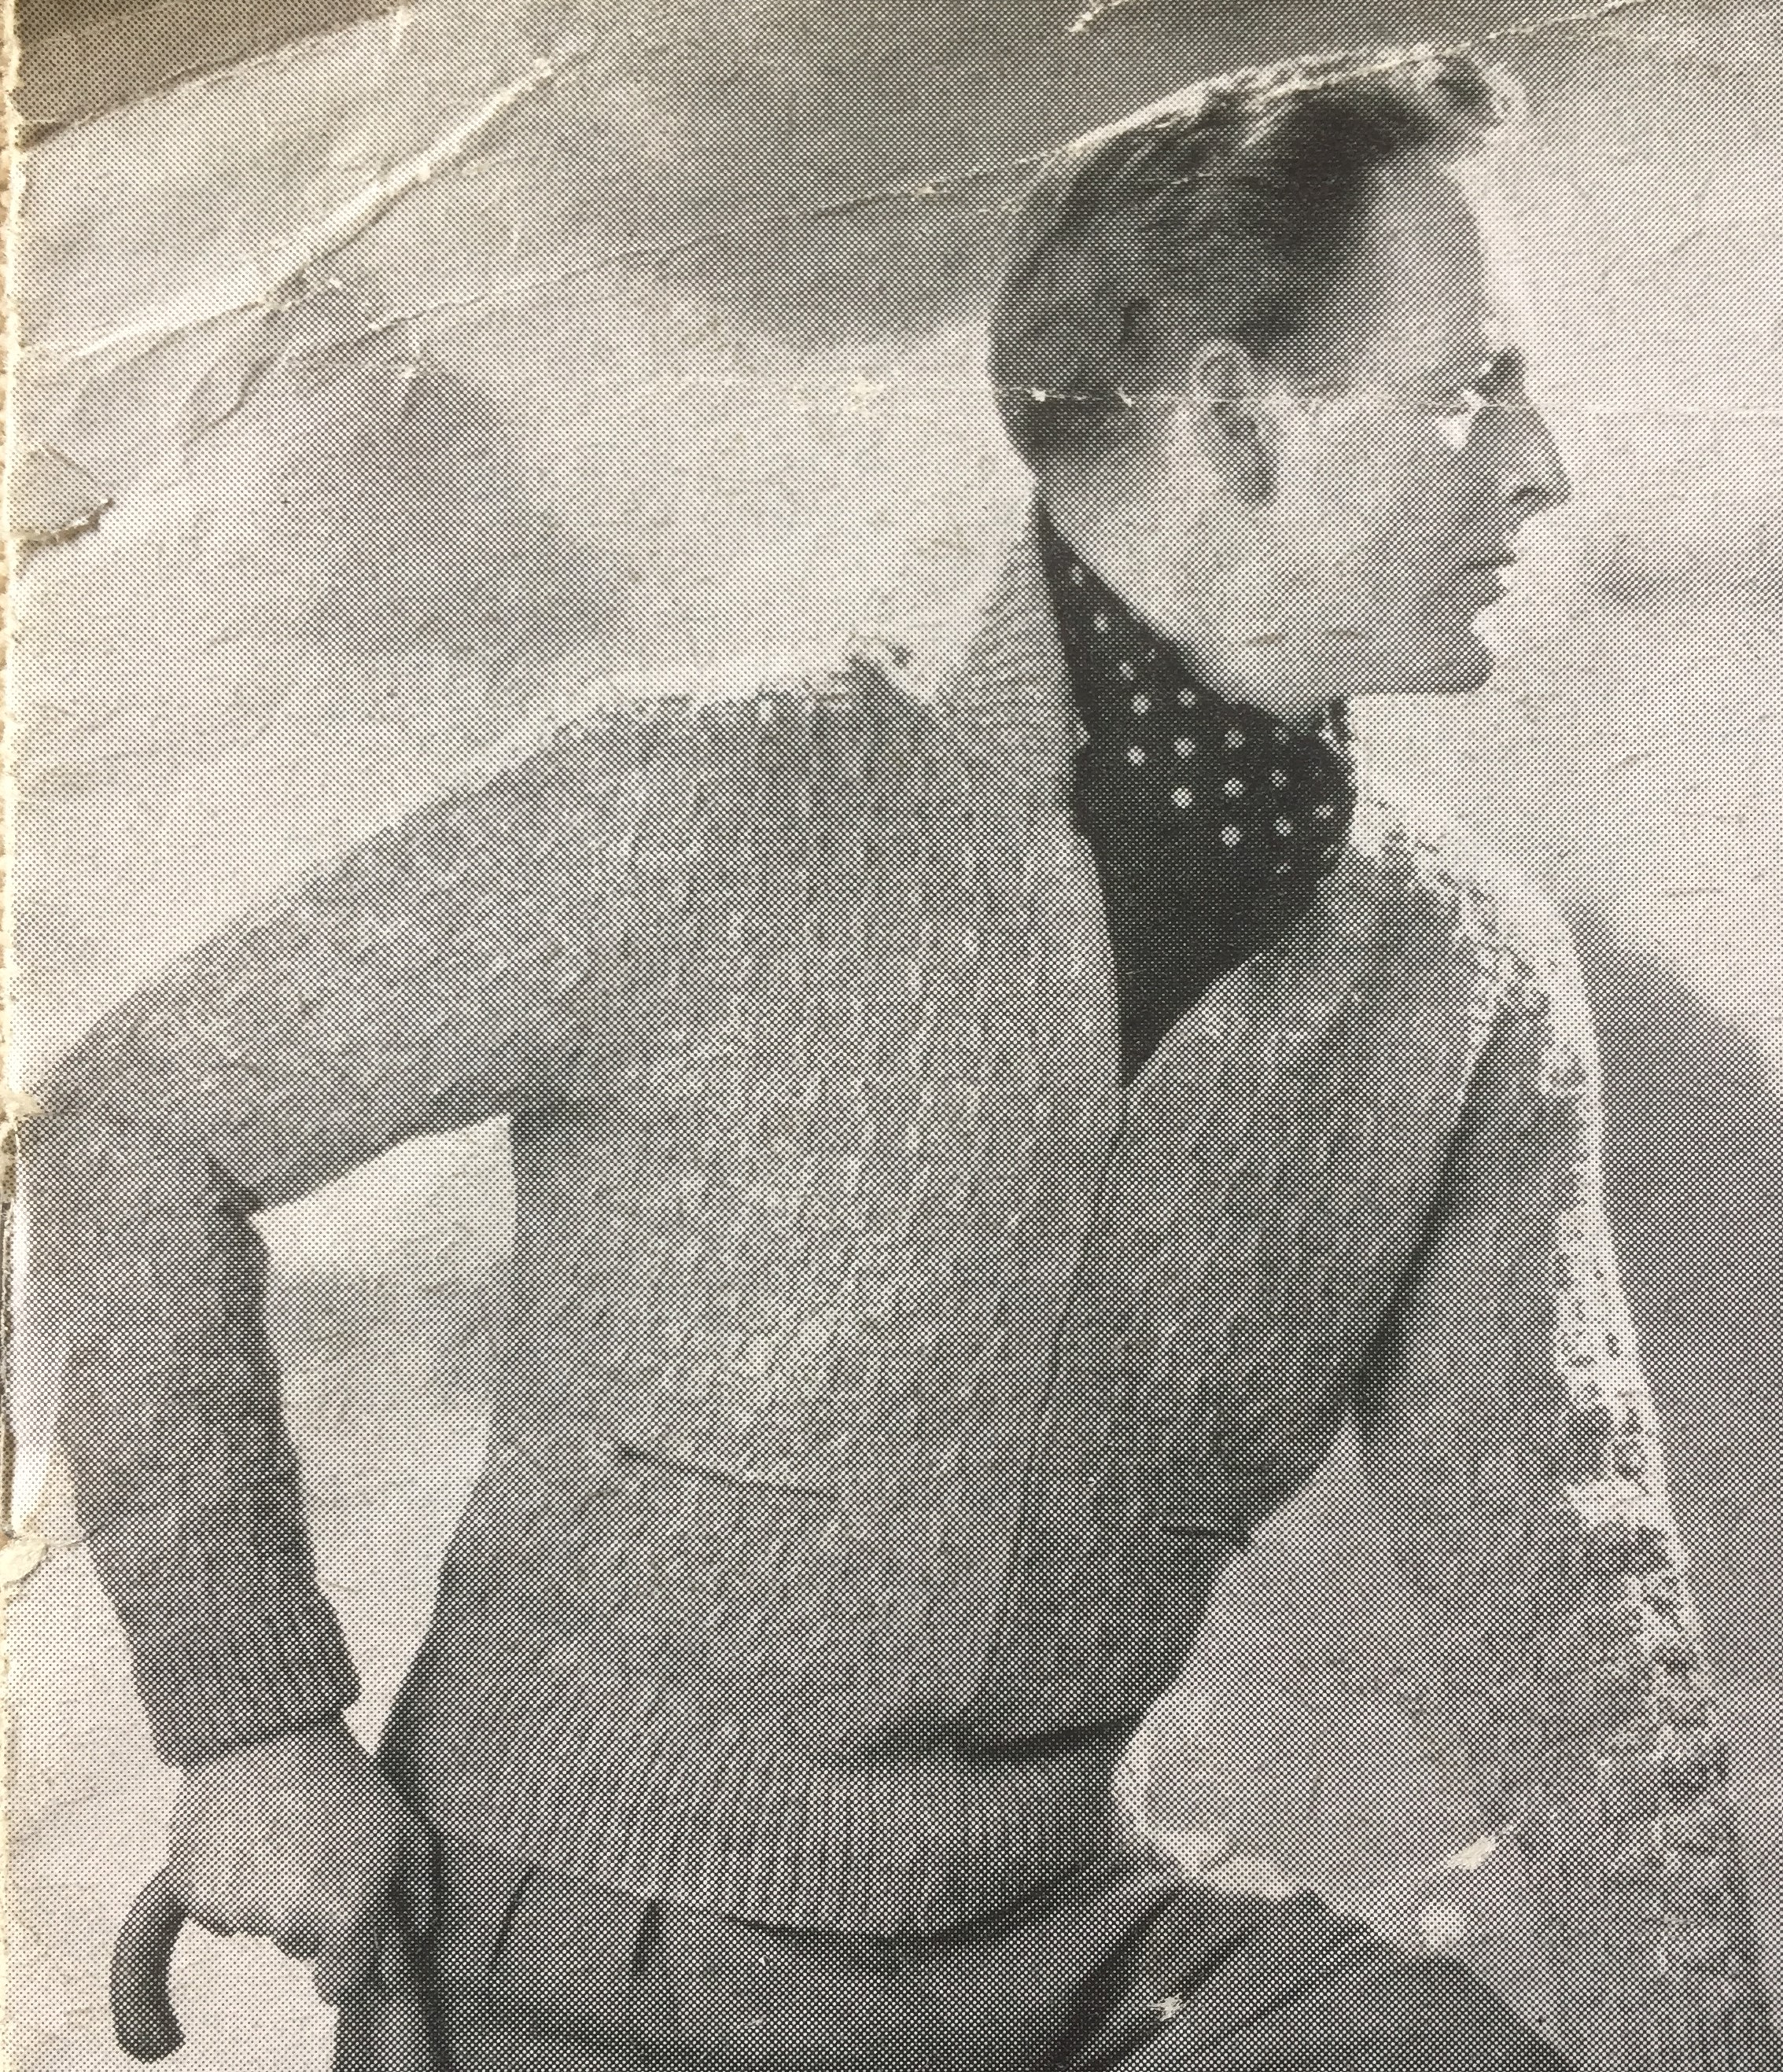 Vintage photo of male knitwear model side profile